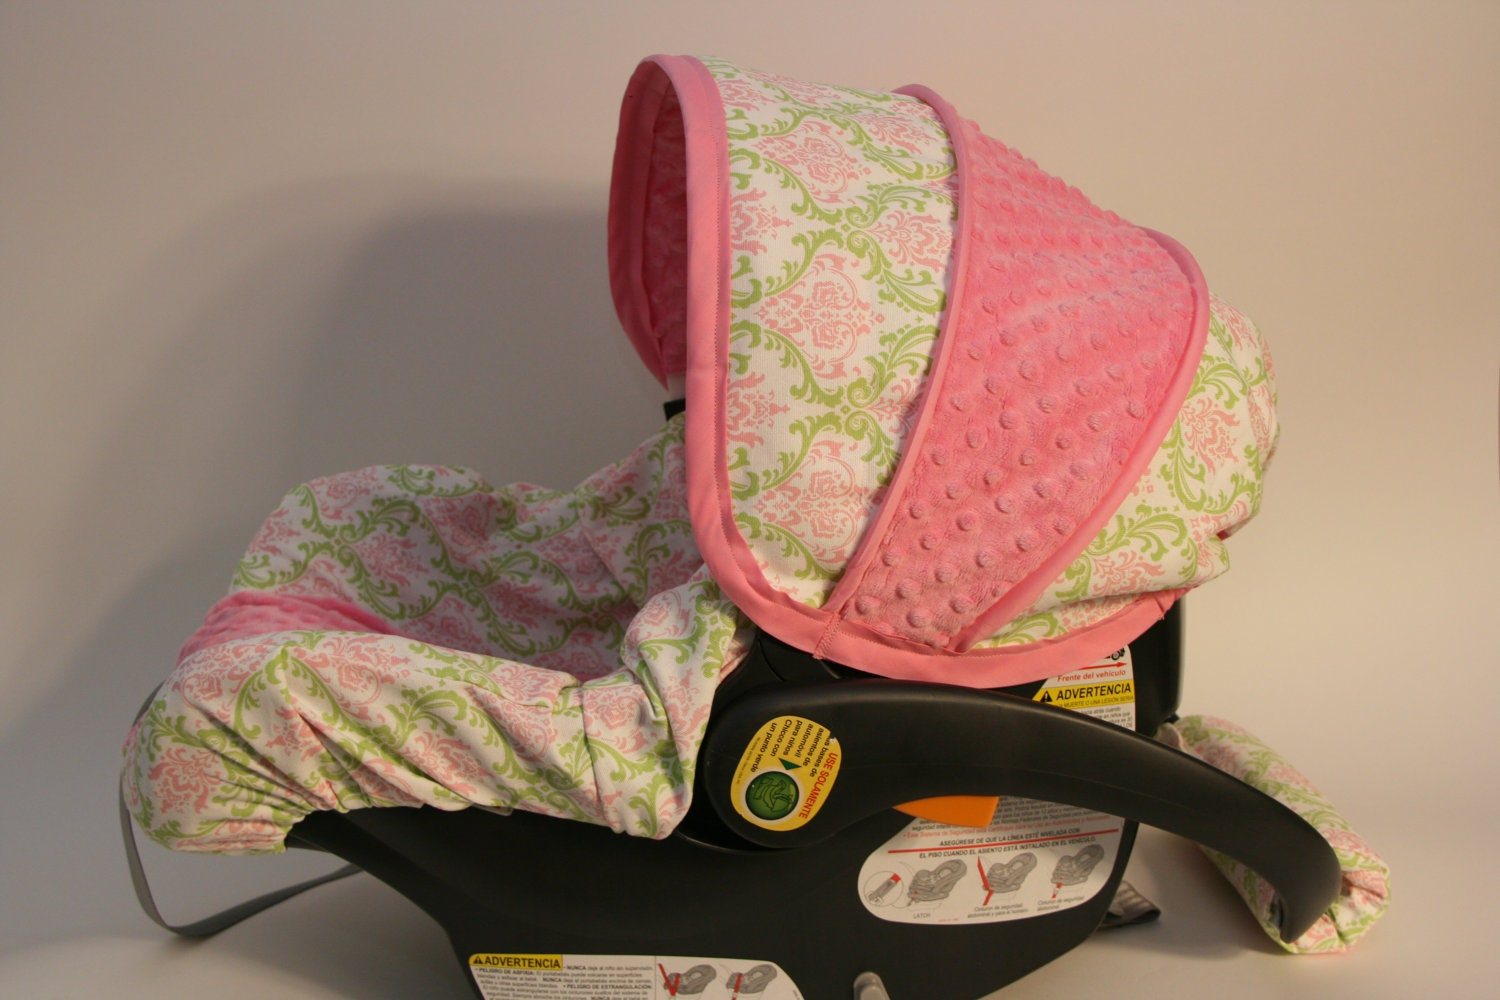 ships today pink lime damask infant chicco car seat cover. Black Bedroom Furniture Sets. Home Design Ideas